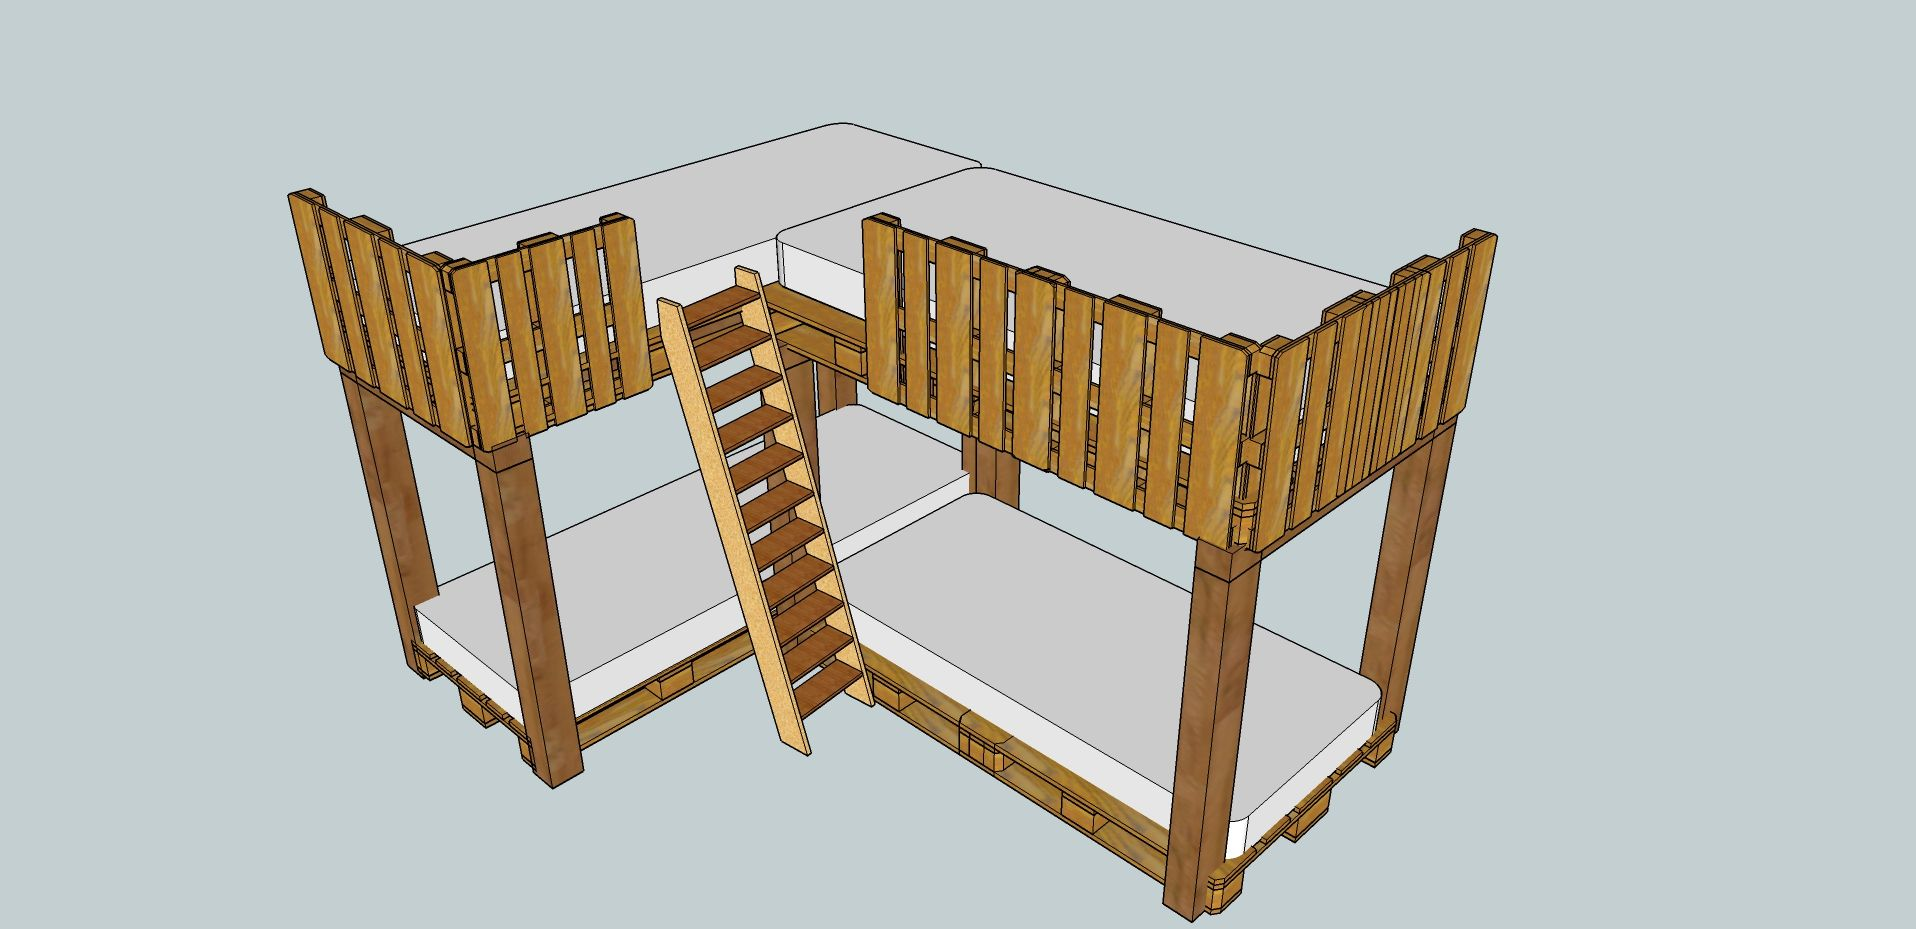 How To Use Google Sketchup For Pallet Crafting Pallet4 Me  # Muebles Google Sketchup